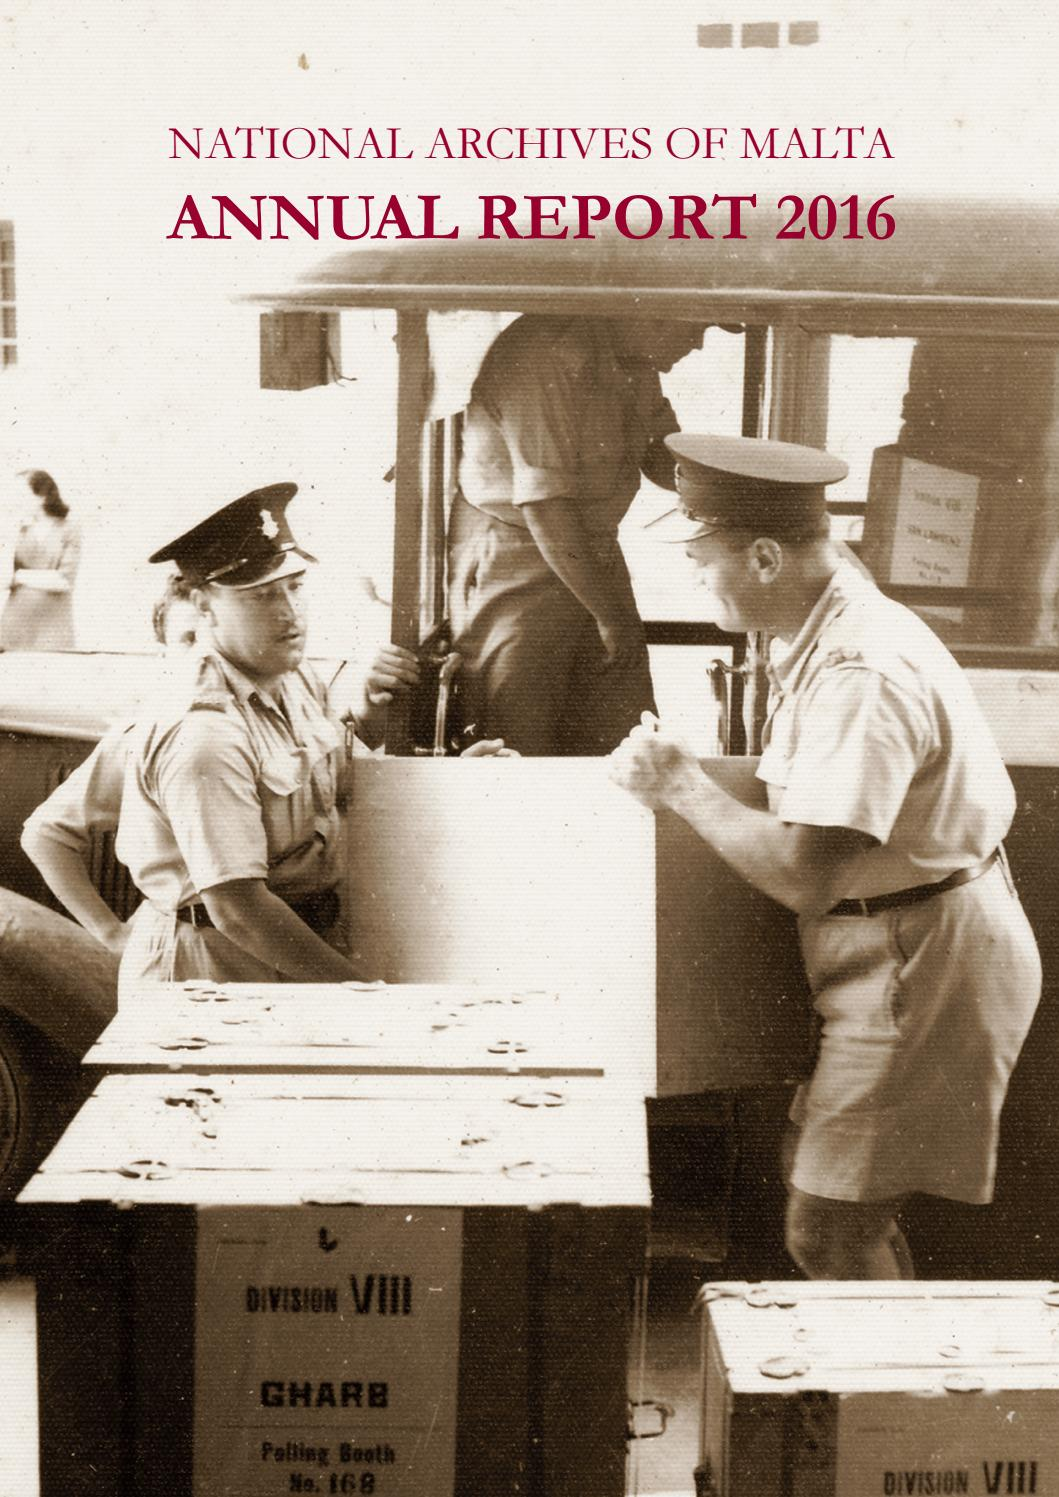 Nam Official Annual Report 2016 By National Archives Malta Issuu Brian Ellul Blog Airx New Controller